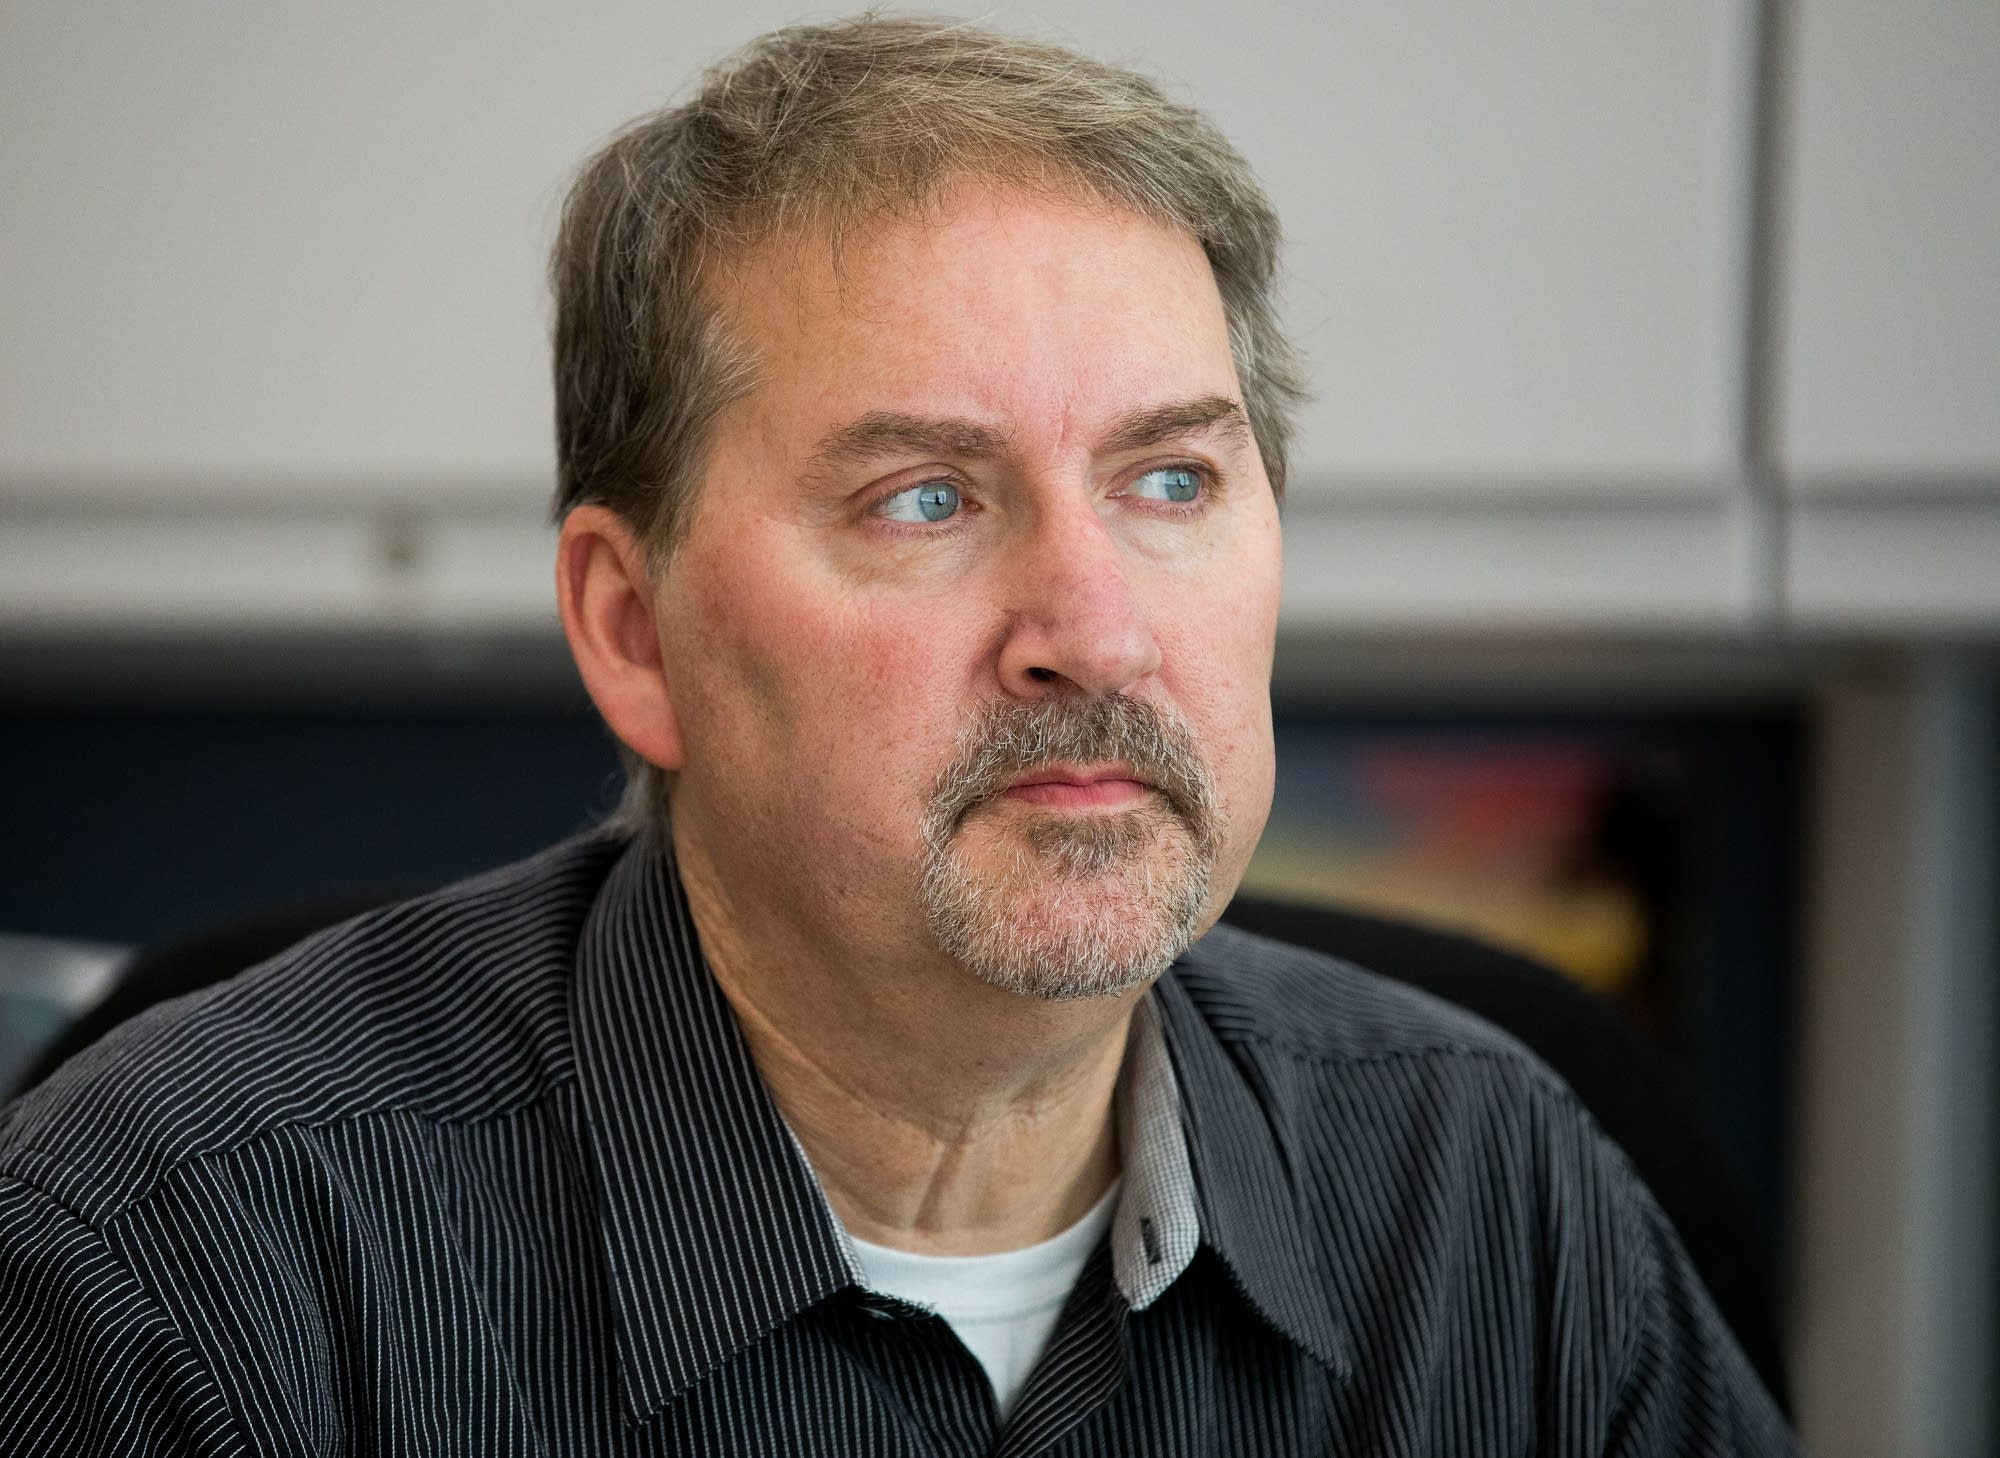 Brainerd Dispatch publisher Pete Mohs talks about distrust of the media.